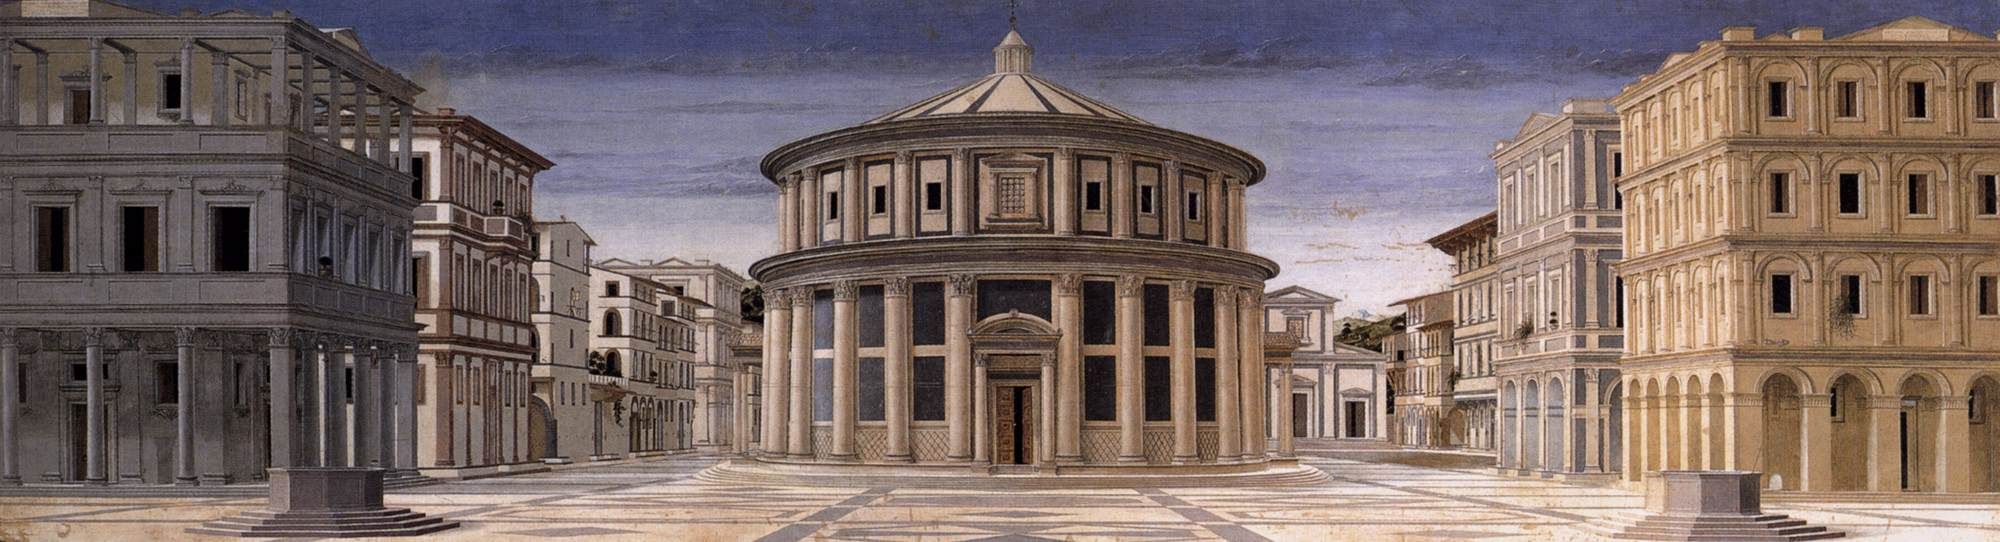 Ideal city piero della francesca for Architecture utopique 60